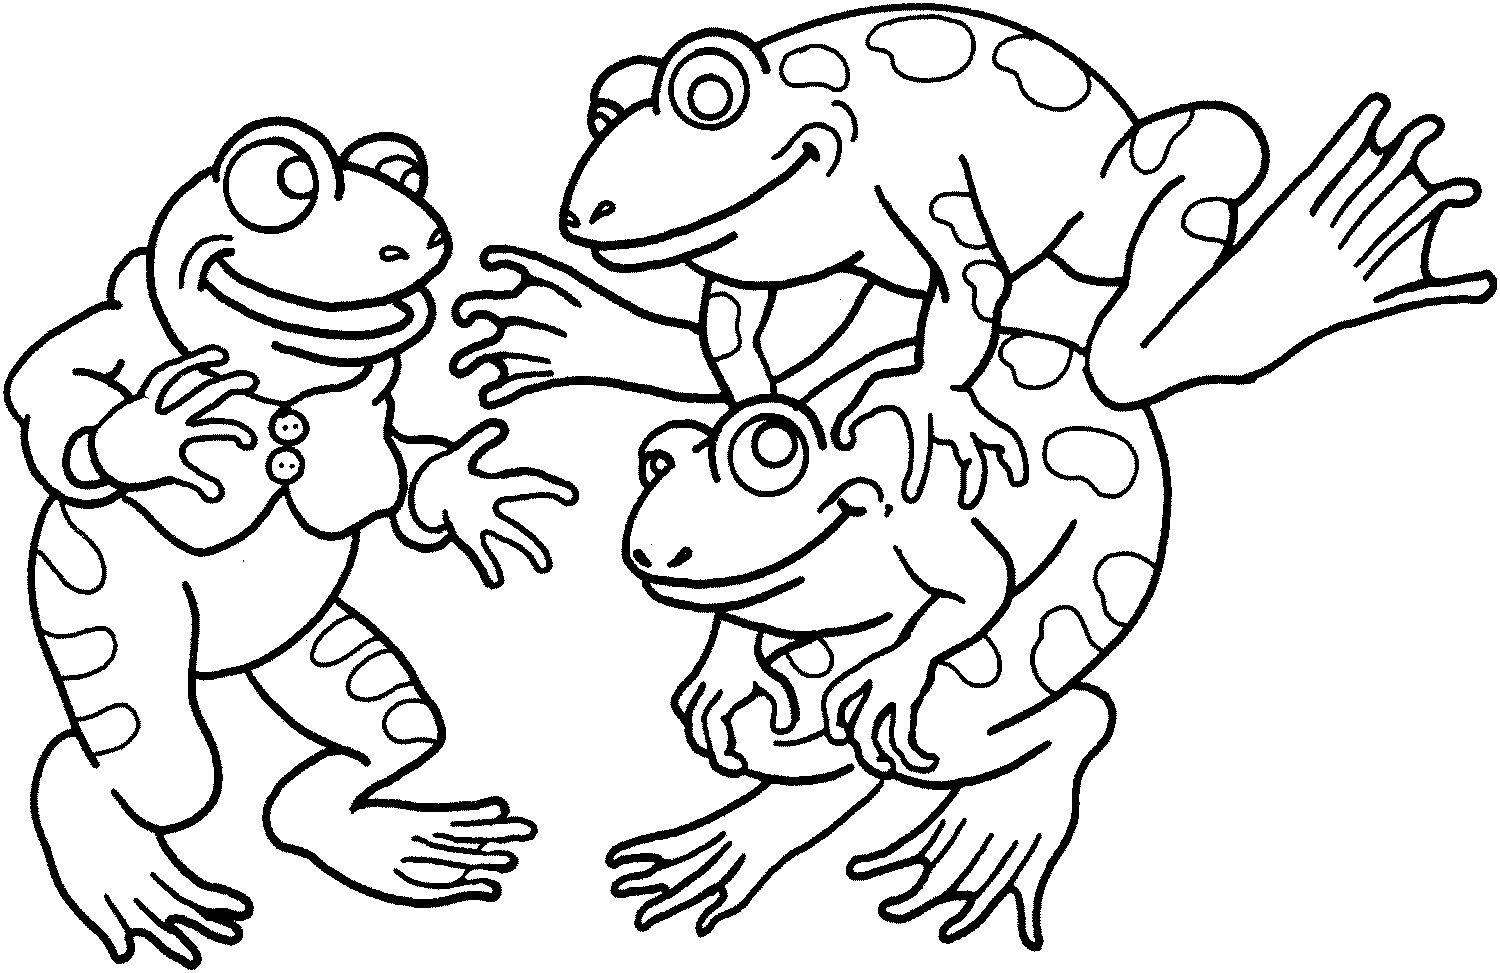 1500x973 Rare Coloring Pictures Of Frogs Free Printable Frog Pages For Kids